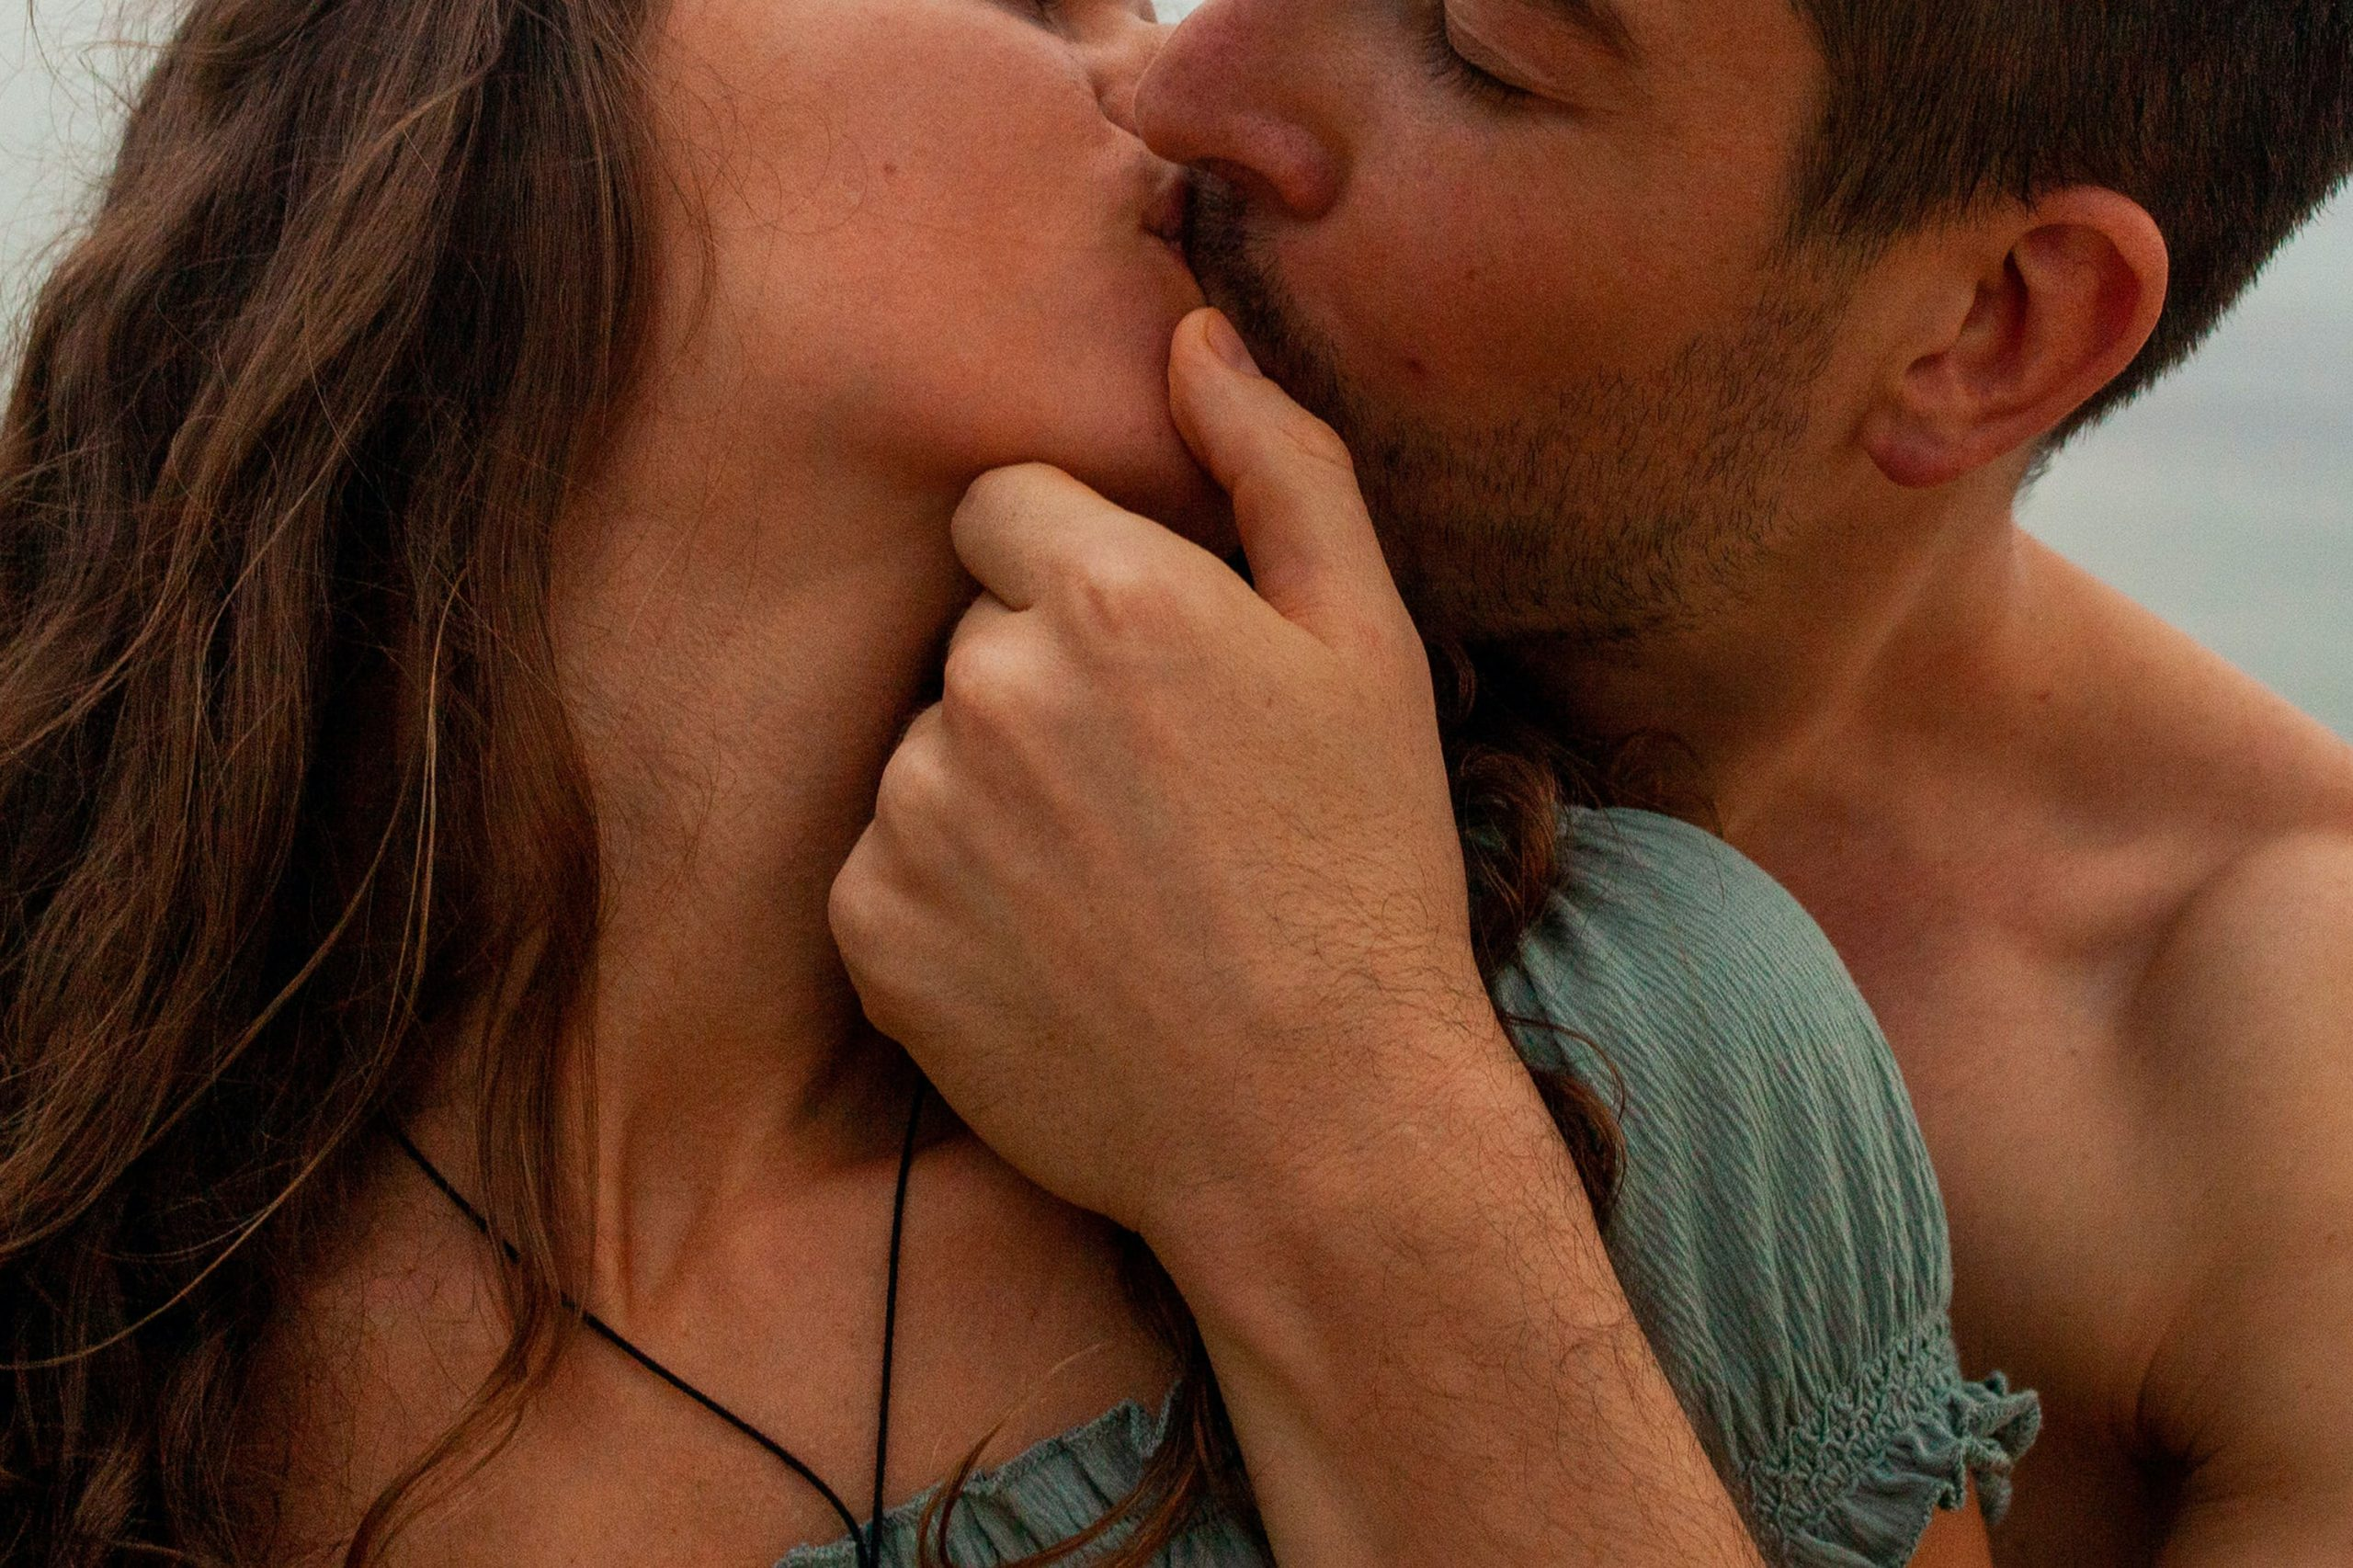 couple sharing intimacy   Bree Taylor Molyneaux